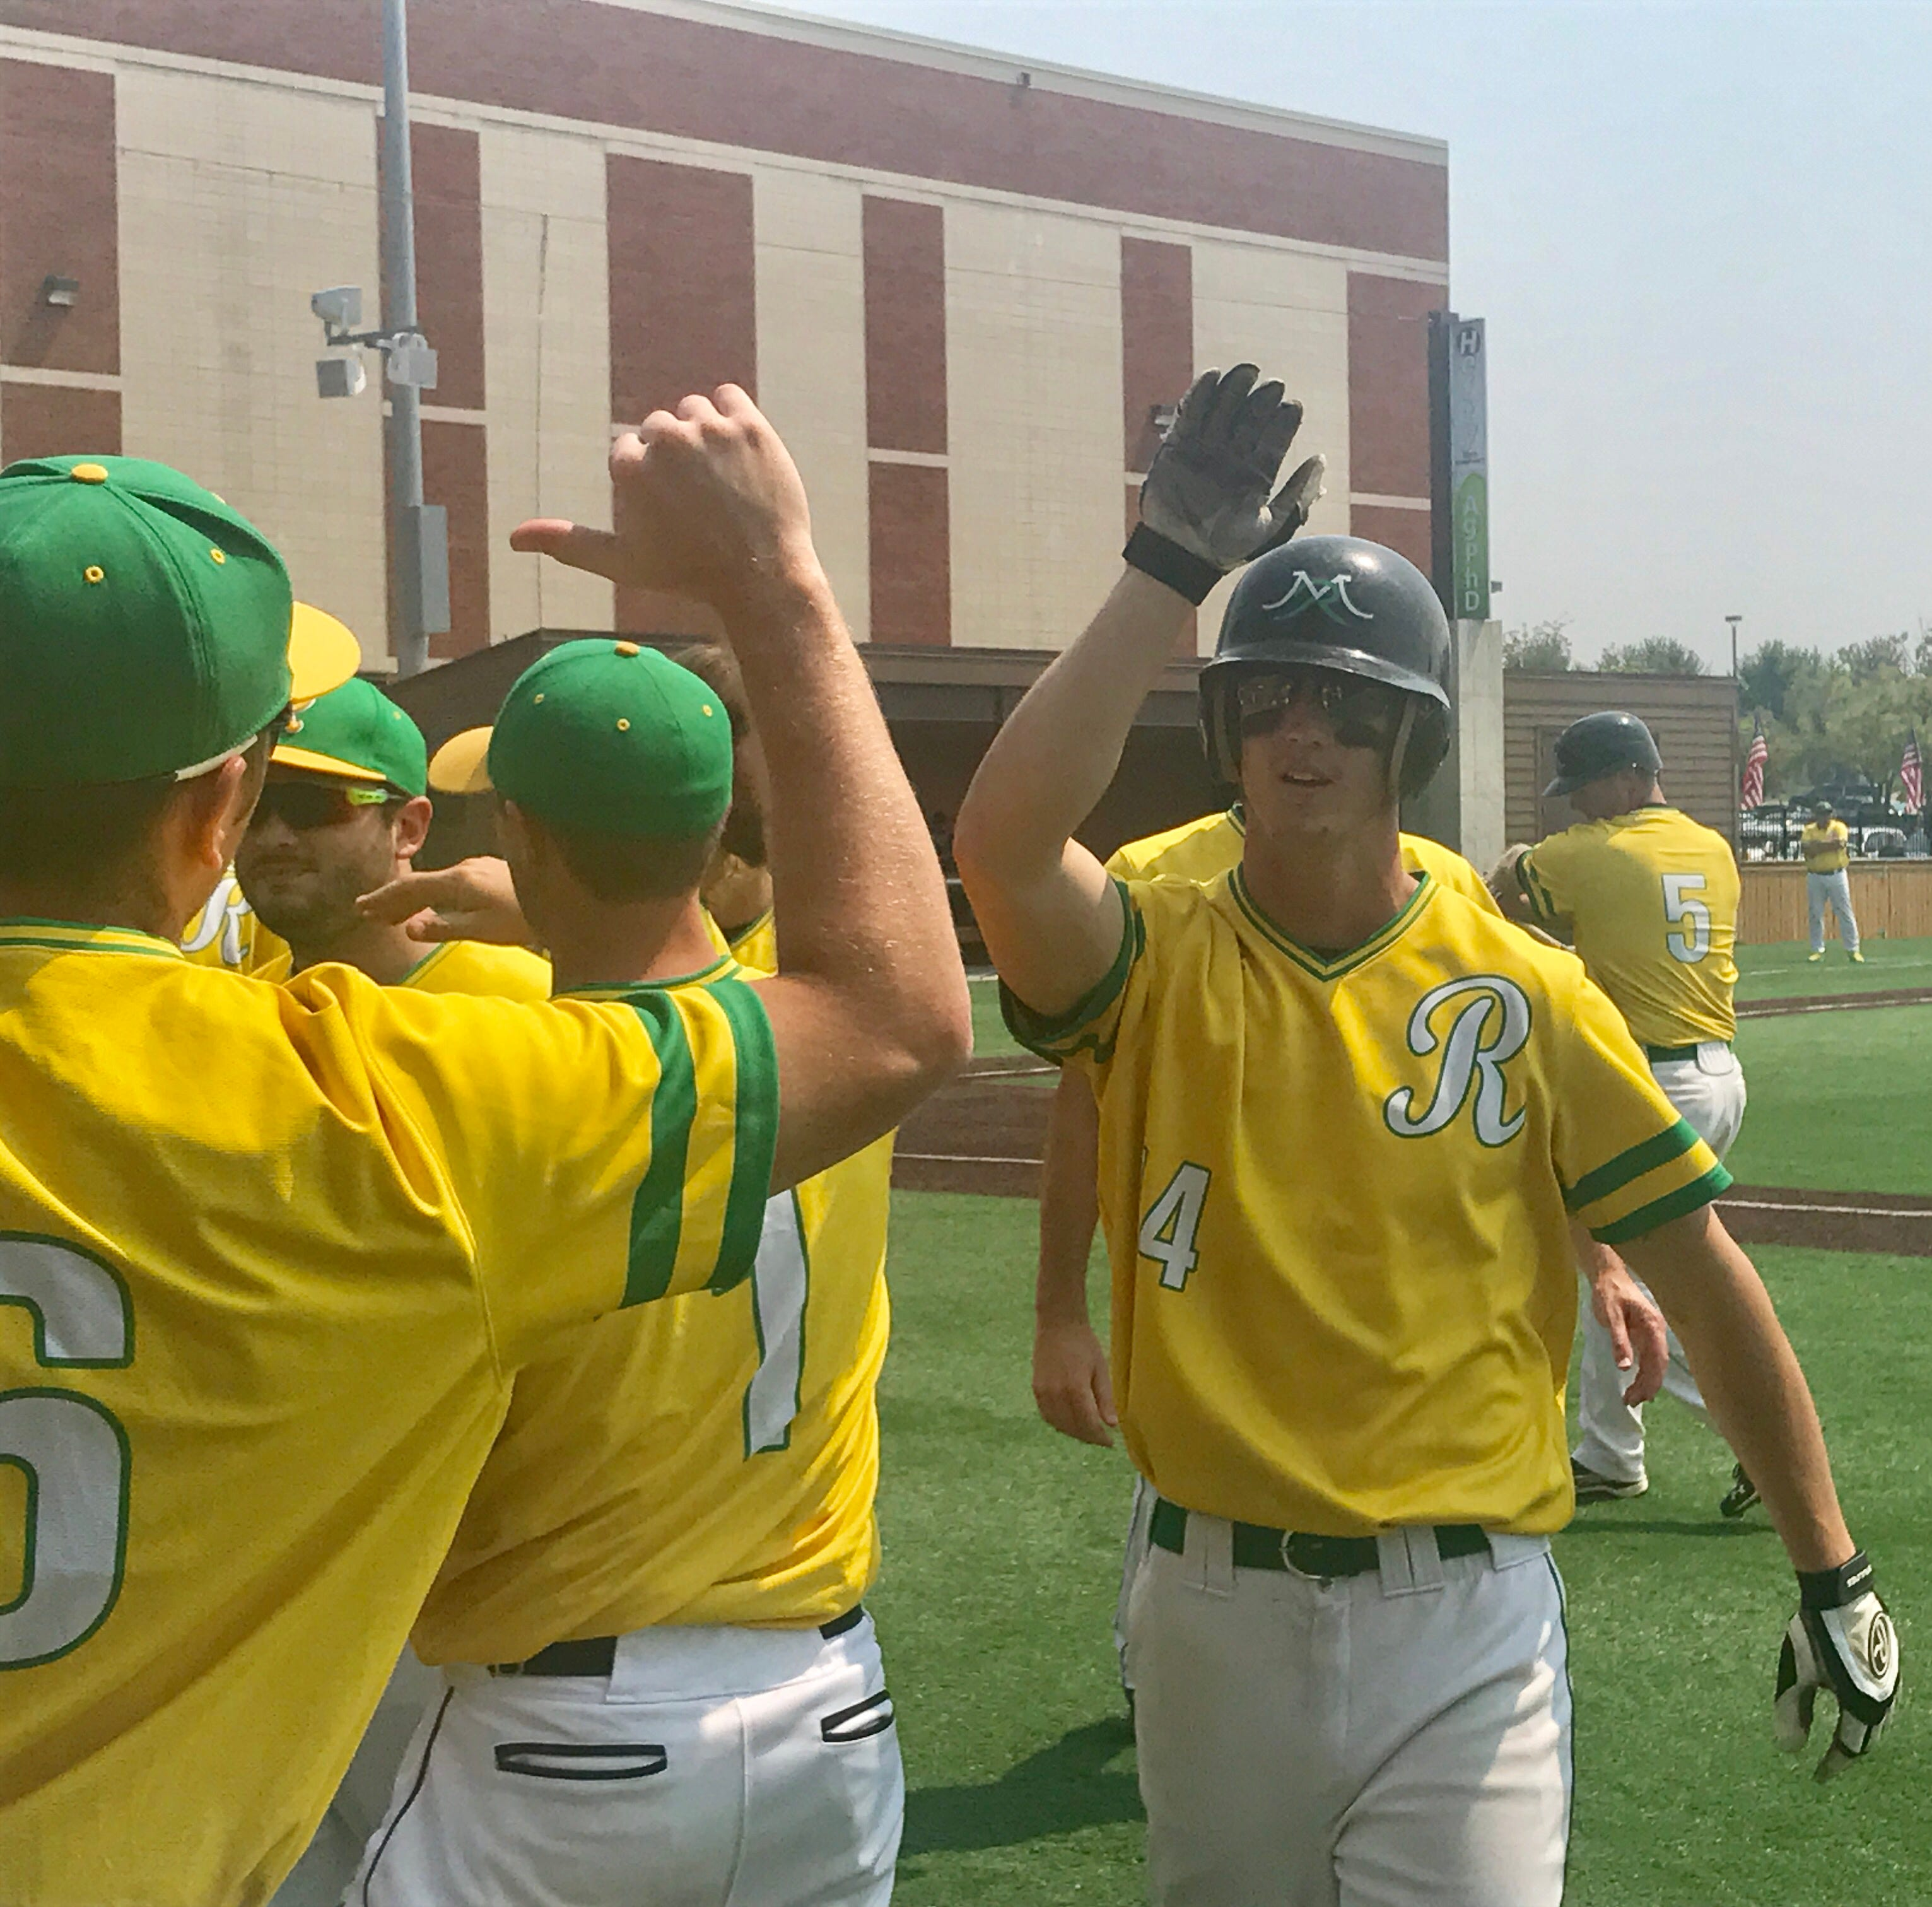 Renner Monarchs punch ticket to 16th consecutive amateur baseball championship